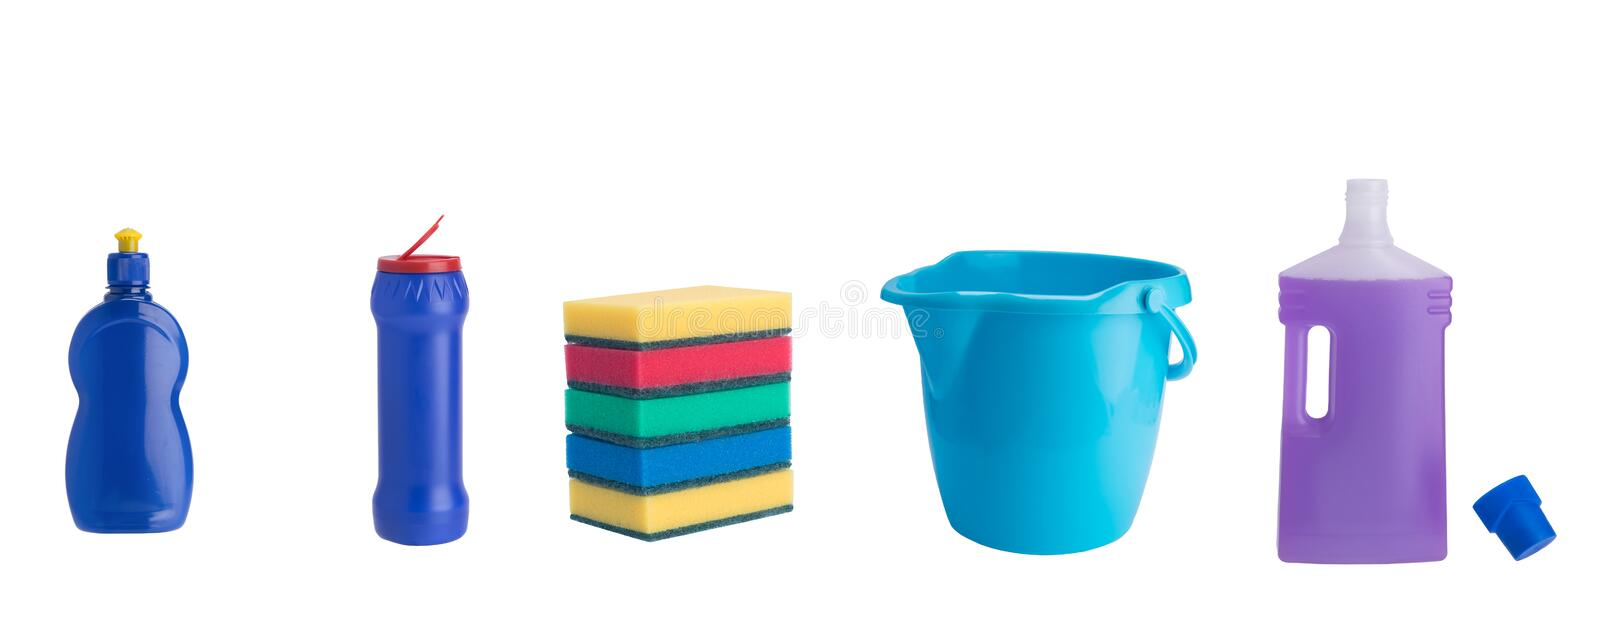 Set of five items for cleaning indoors isolated on white stock images